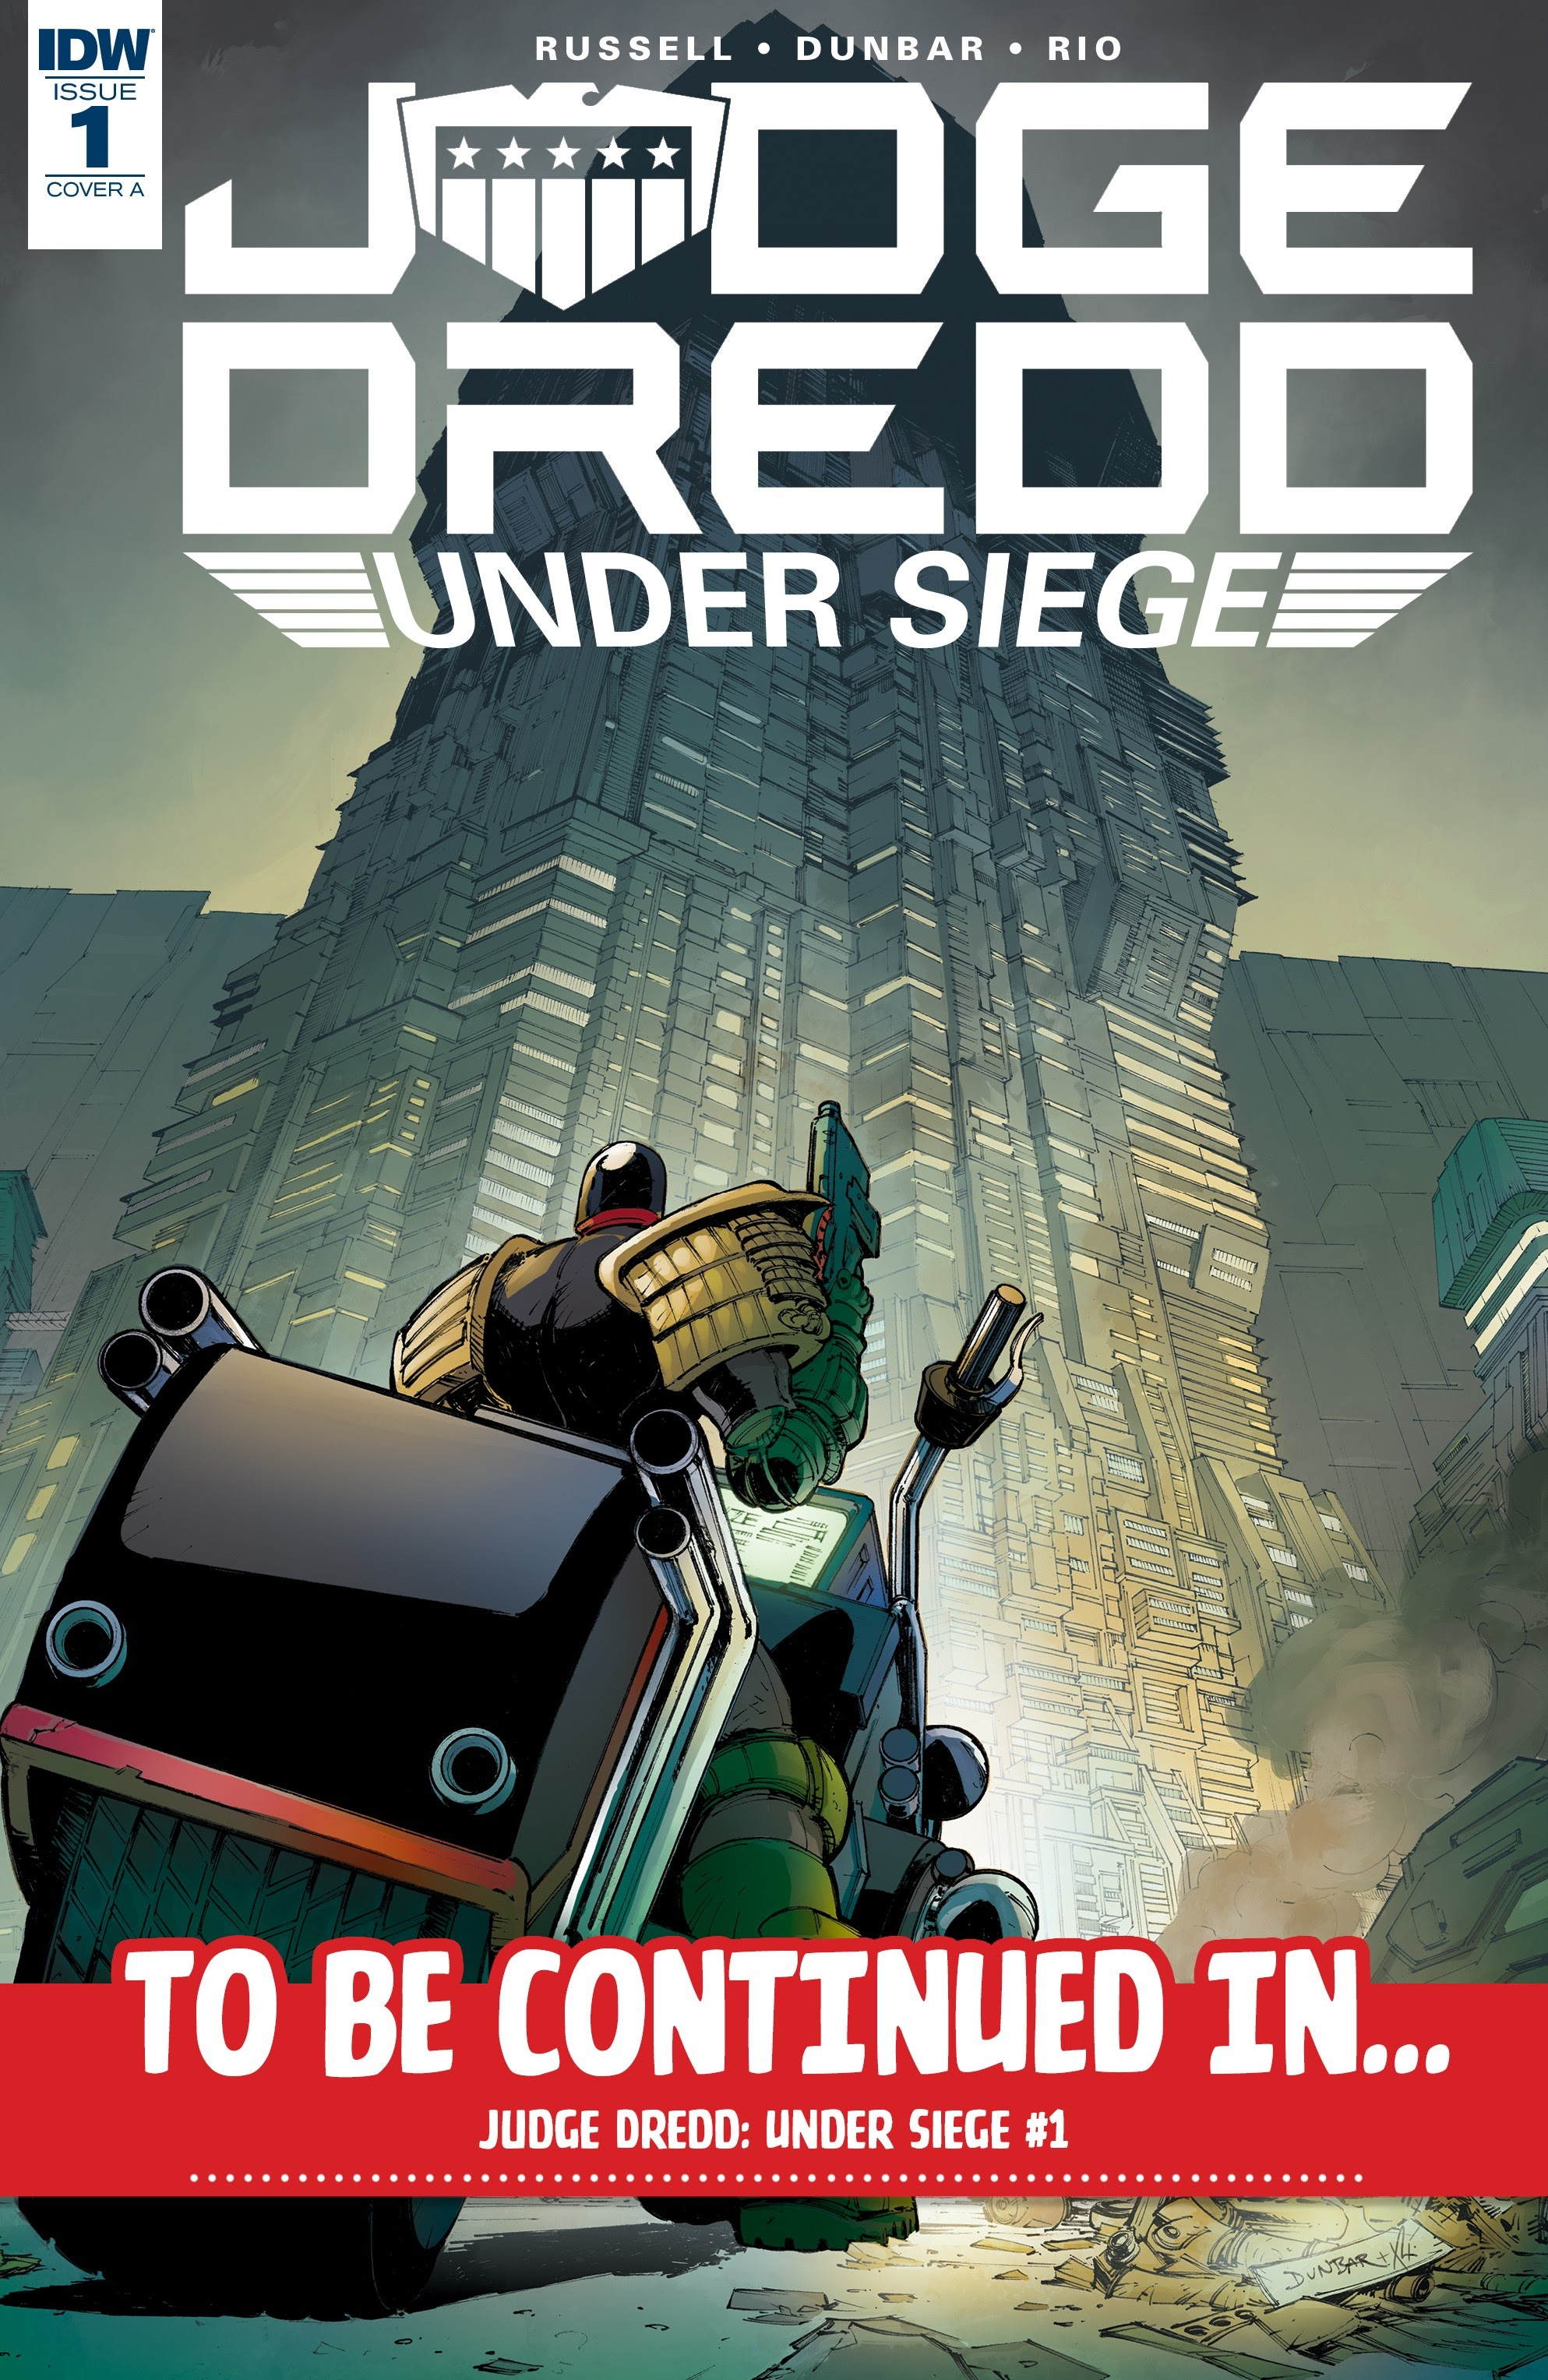 Judge Dredd: Toxic #4 #4 - English 34